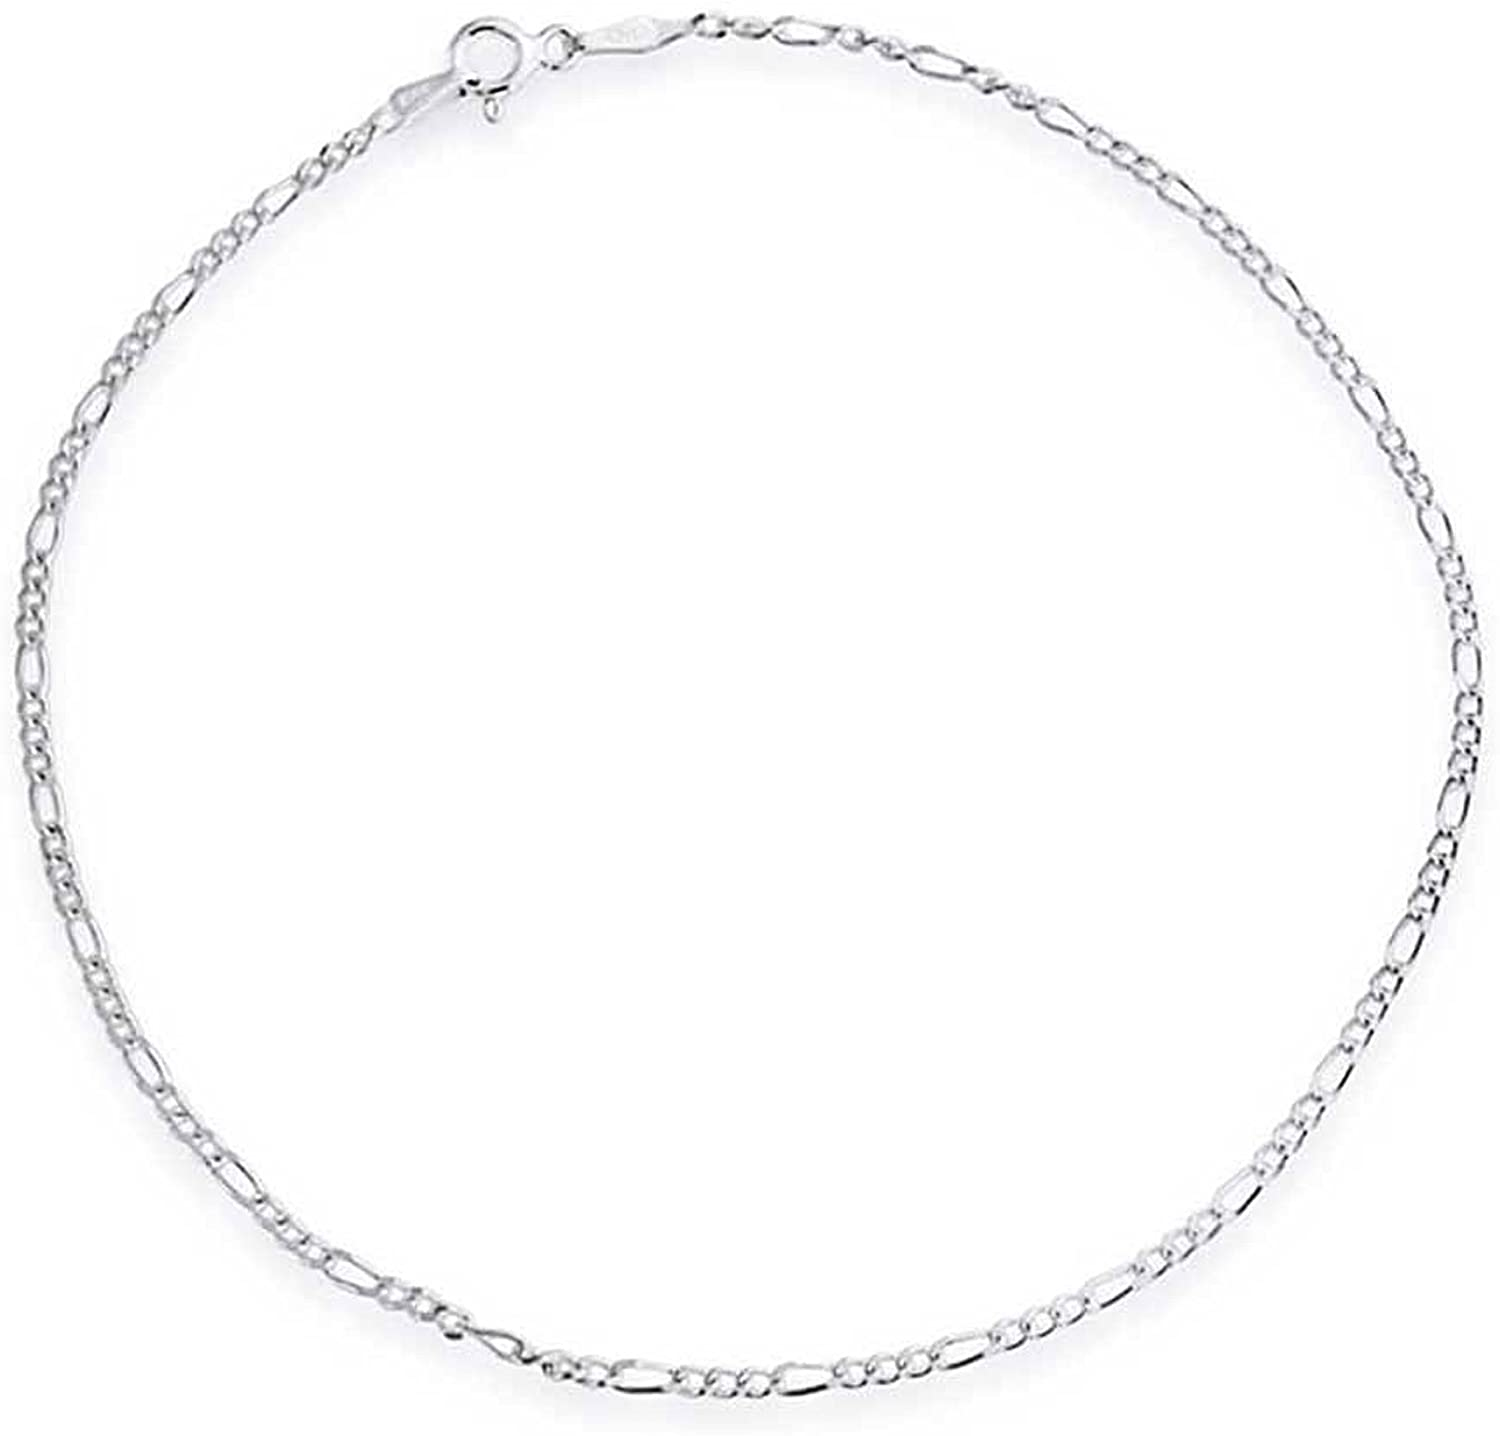 Simple Strong 50 Gauge 925 Sterling Silver Figaro Chain Anklet For Teen Ankle Bracelet For Women 9-10 Inch Made In Italy